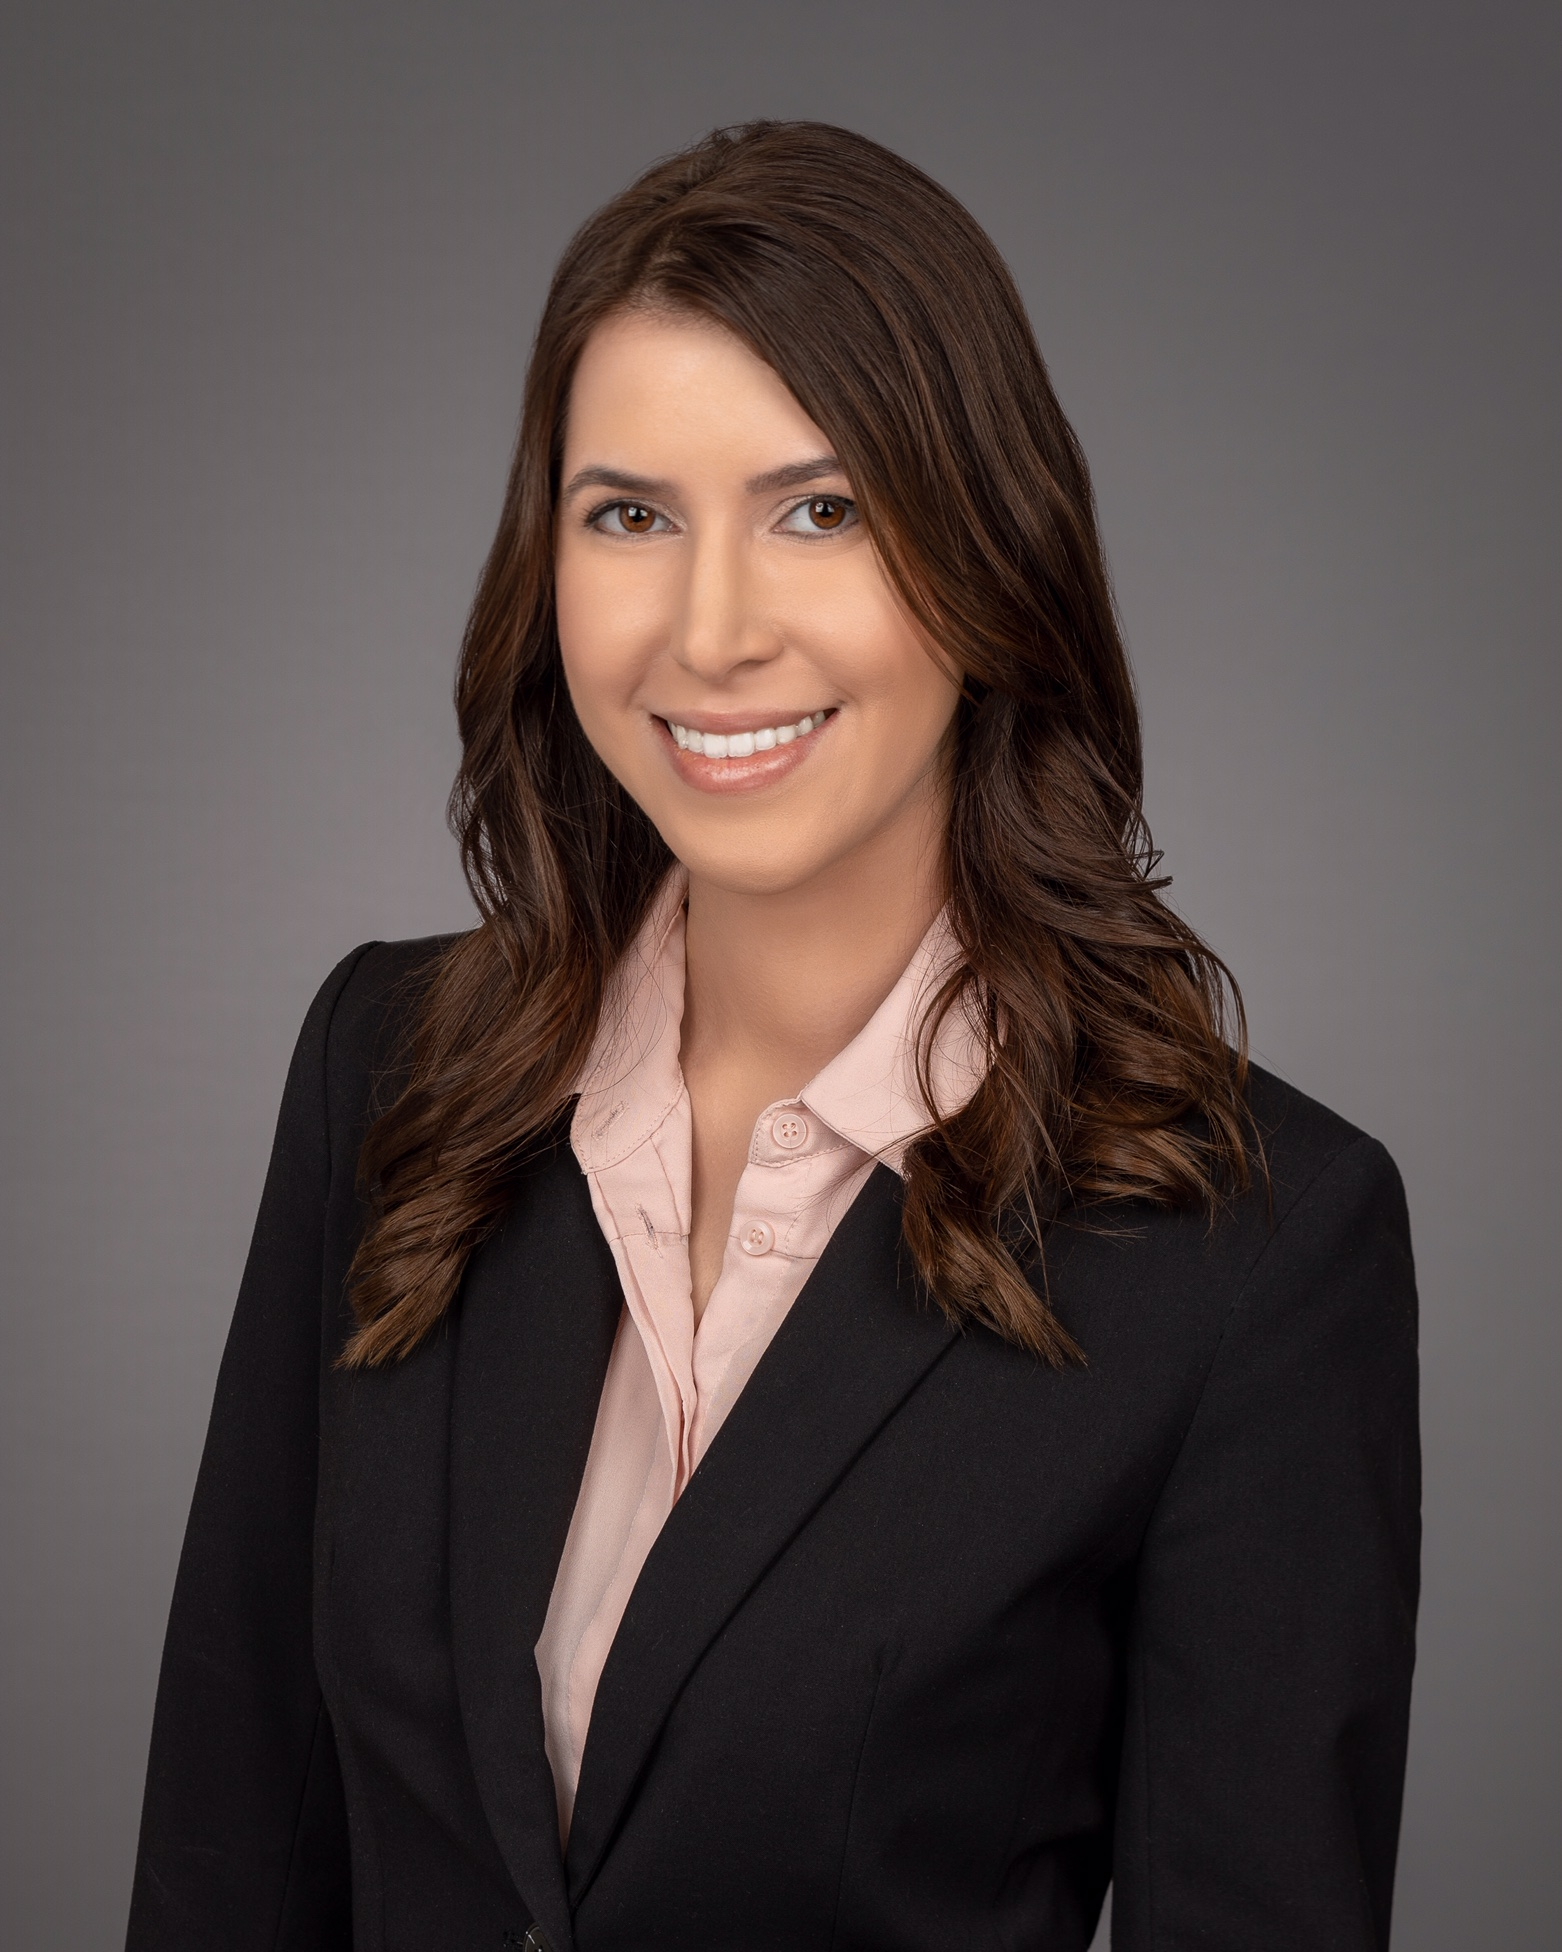 Tiffany A. Bustamante, Esq.